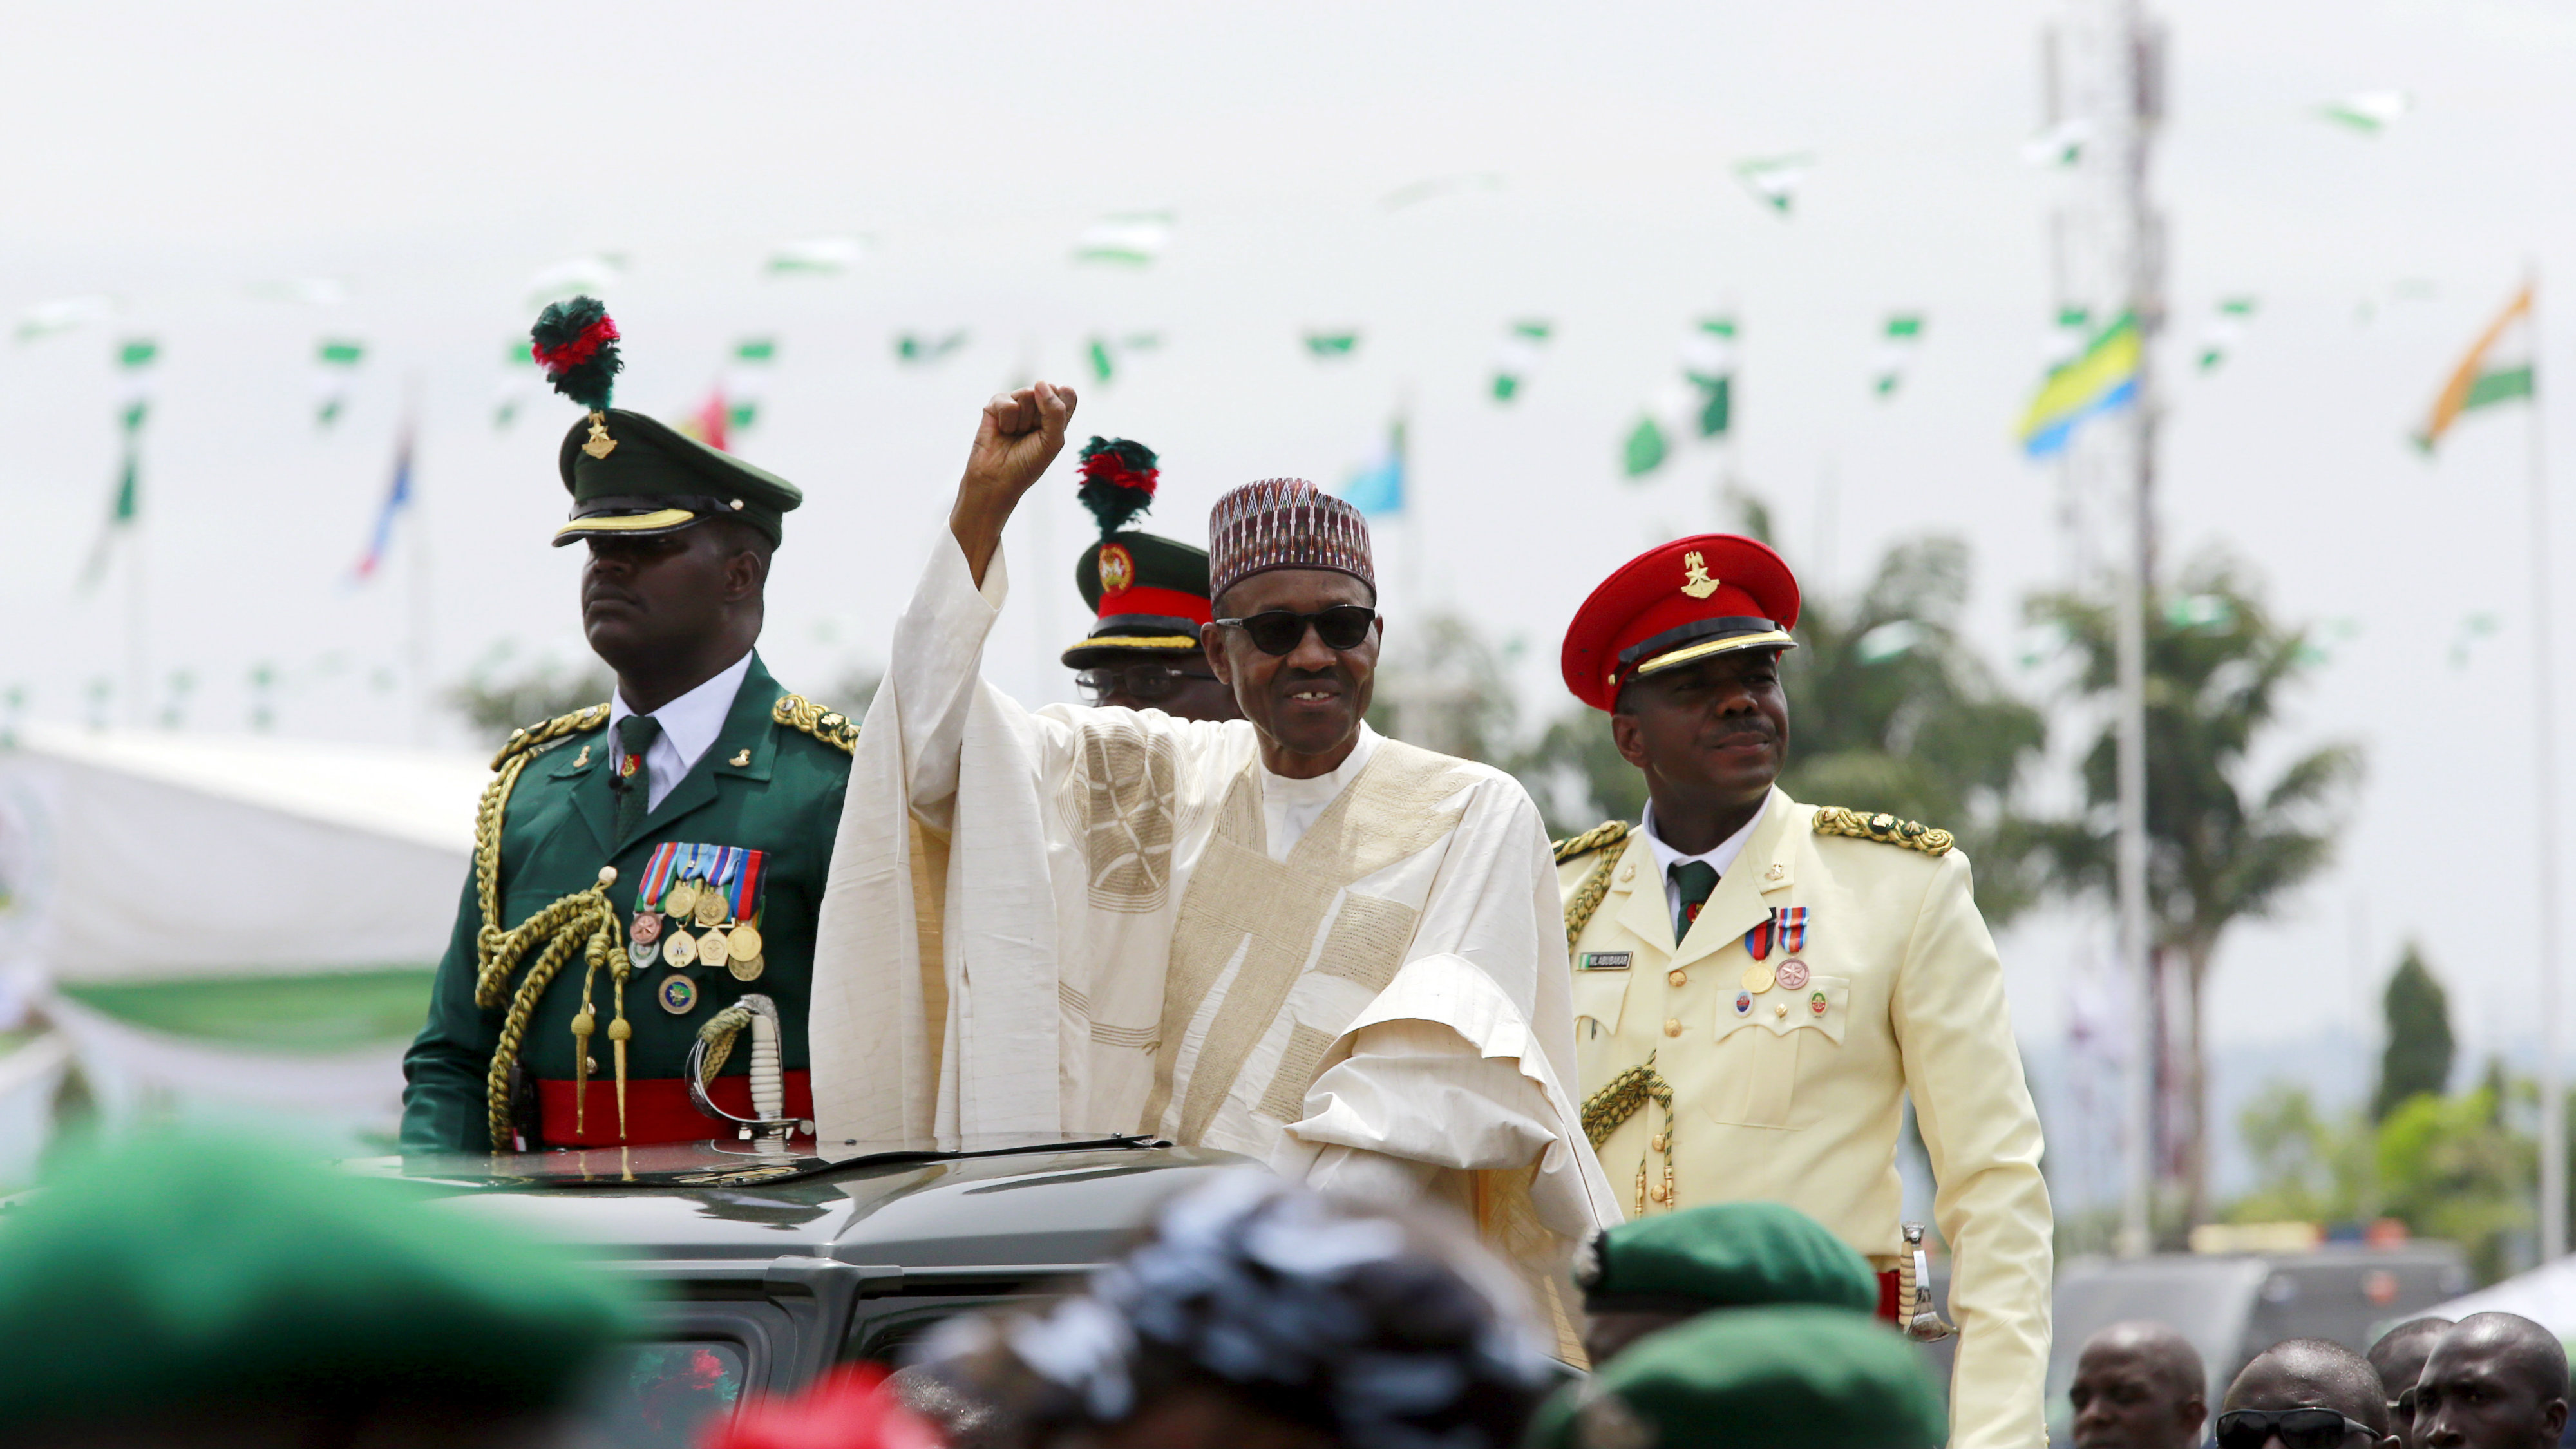 Nigeria's new President Muhammadu Buhari rides on the motorcade while inspecting the guard of honour at Eagle Square in Abuja, Nigeria May 29, 2015. REUTERS/Afolabi Sotunde